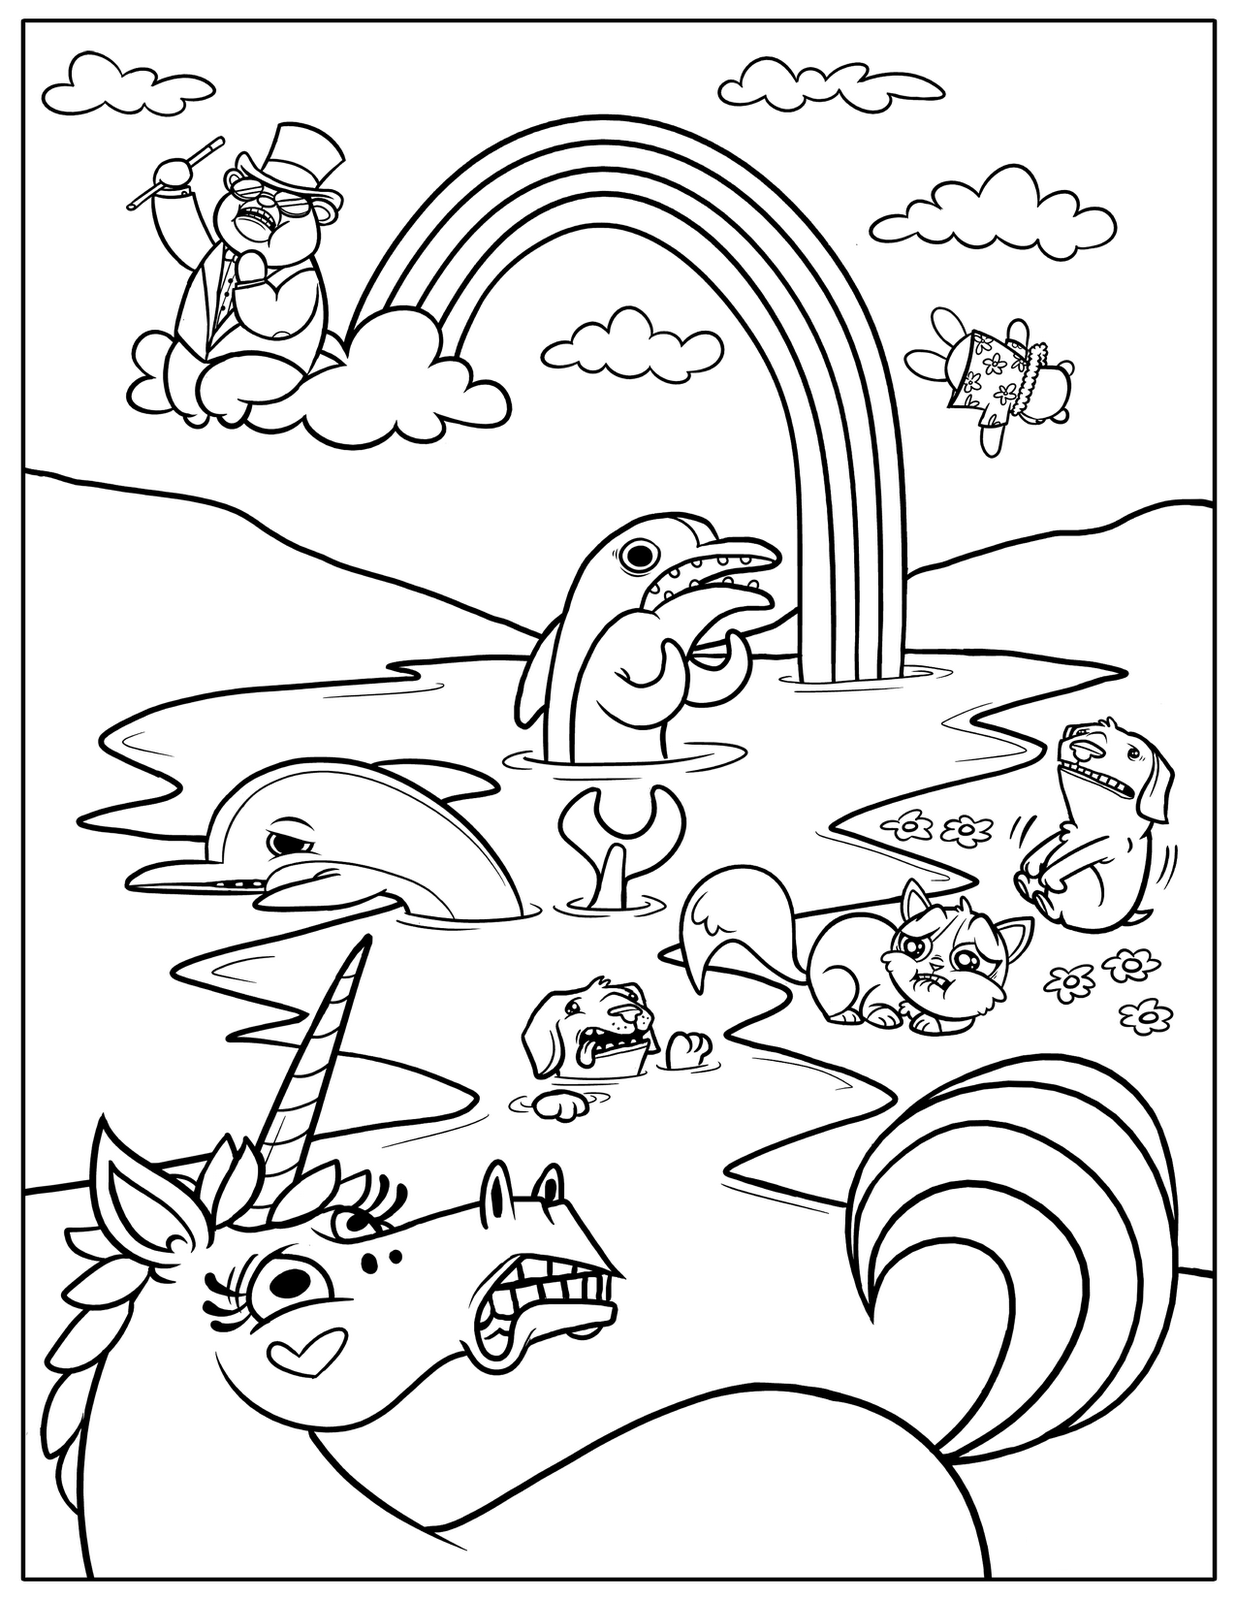 rainbow coloring pages kids printable - Pages For Kids